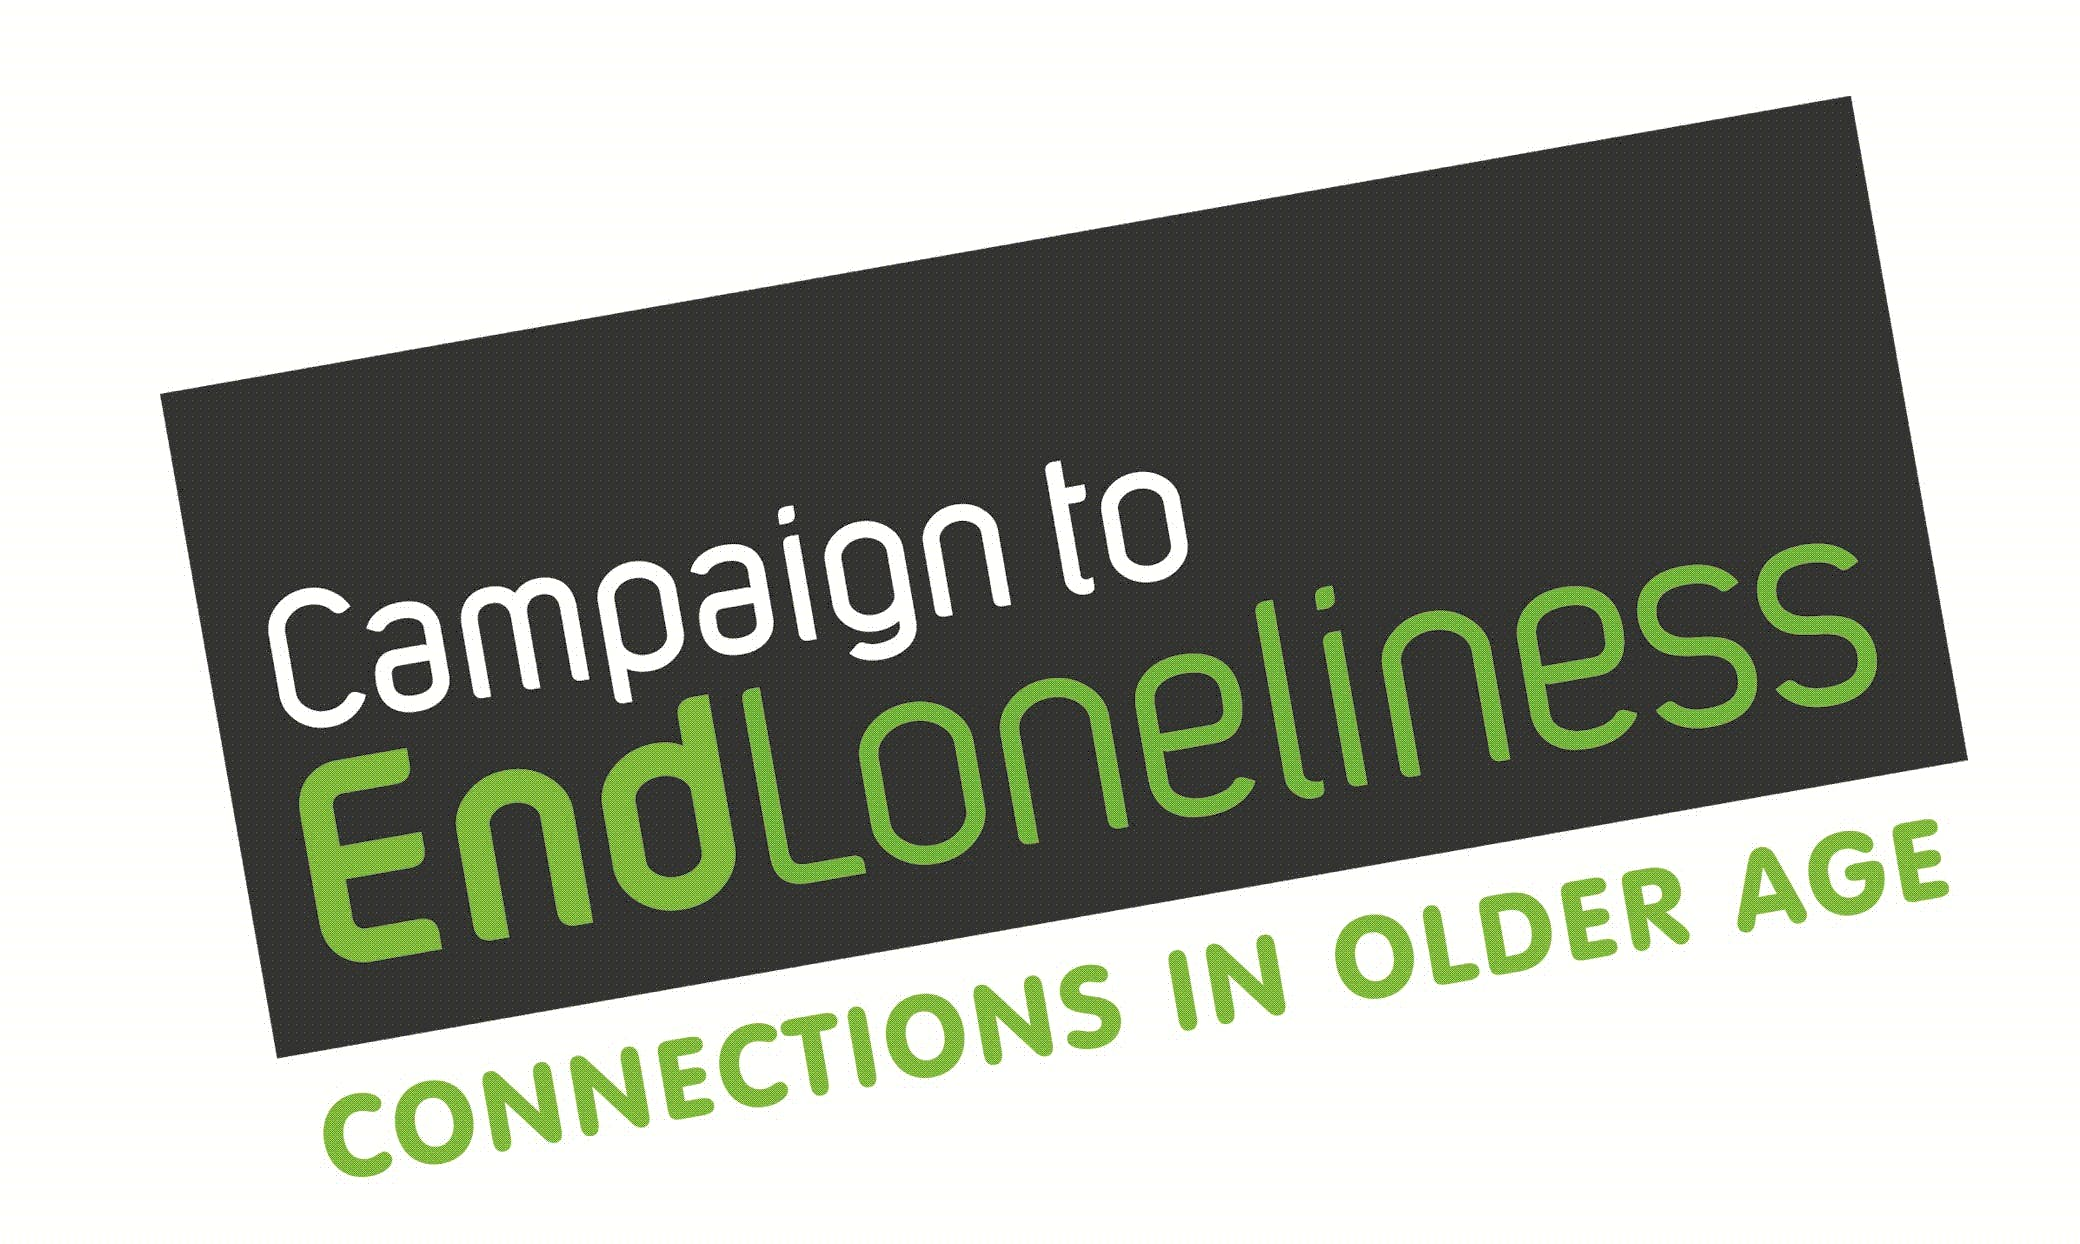 Campaign to End Loneliness: cost effectivenes